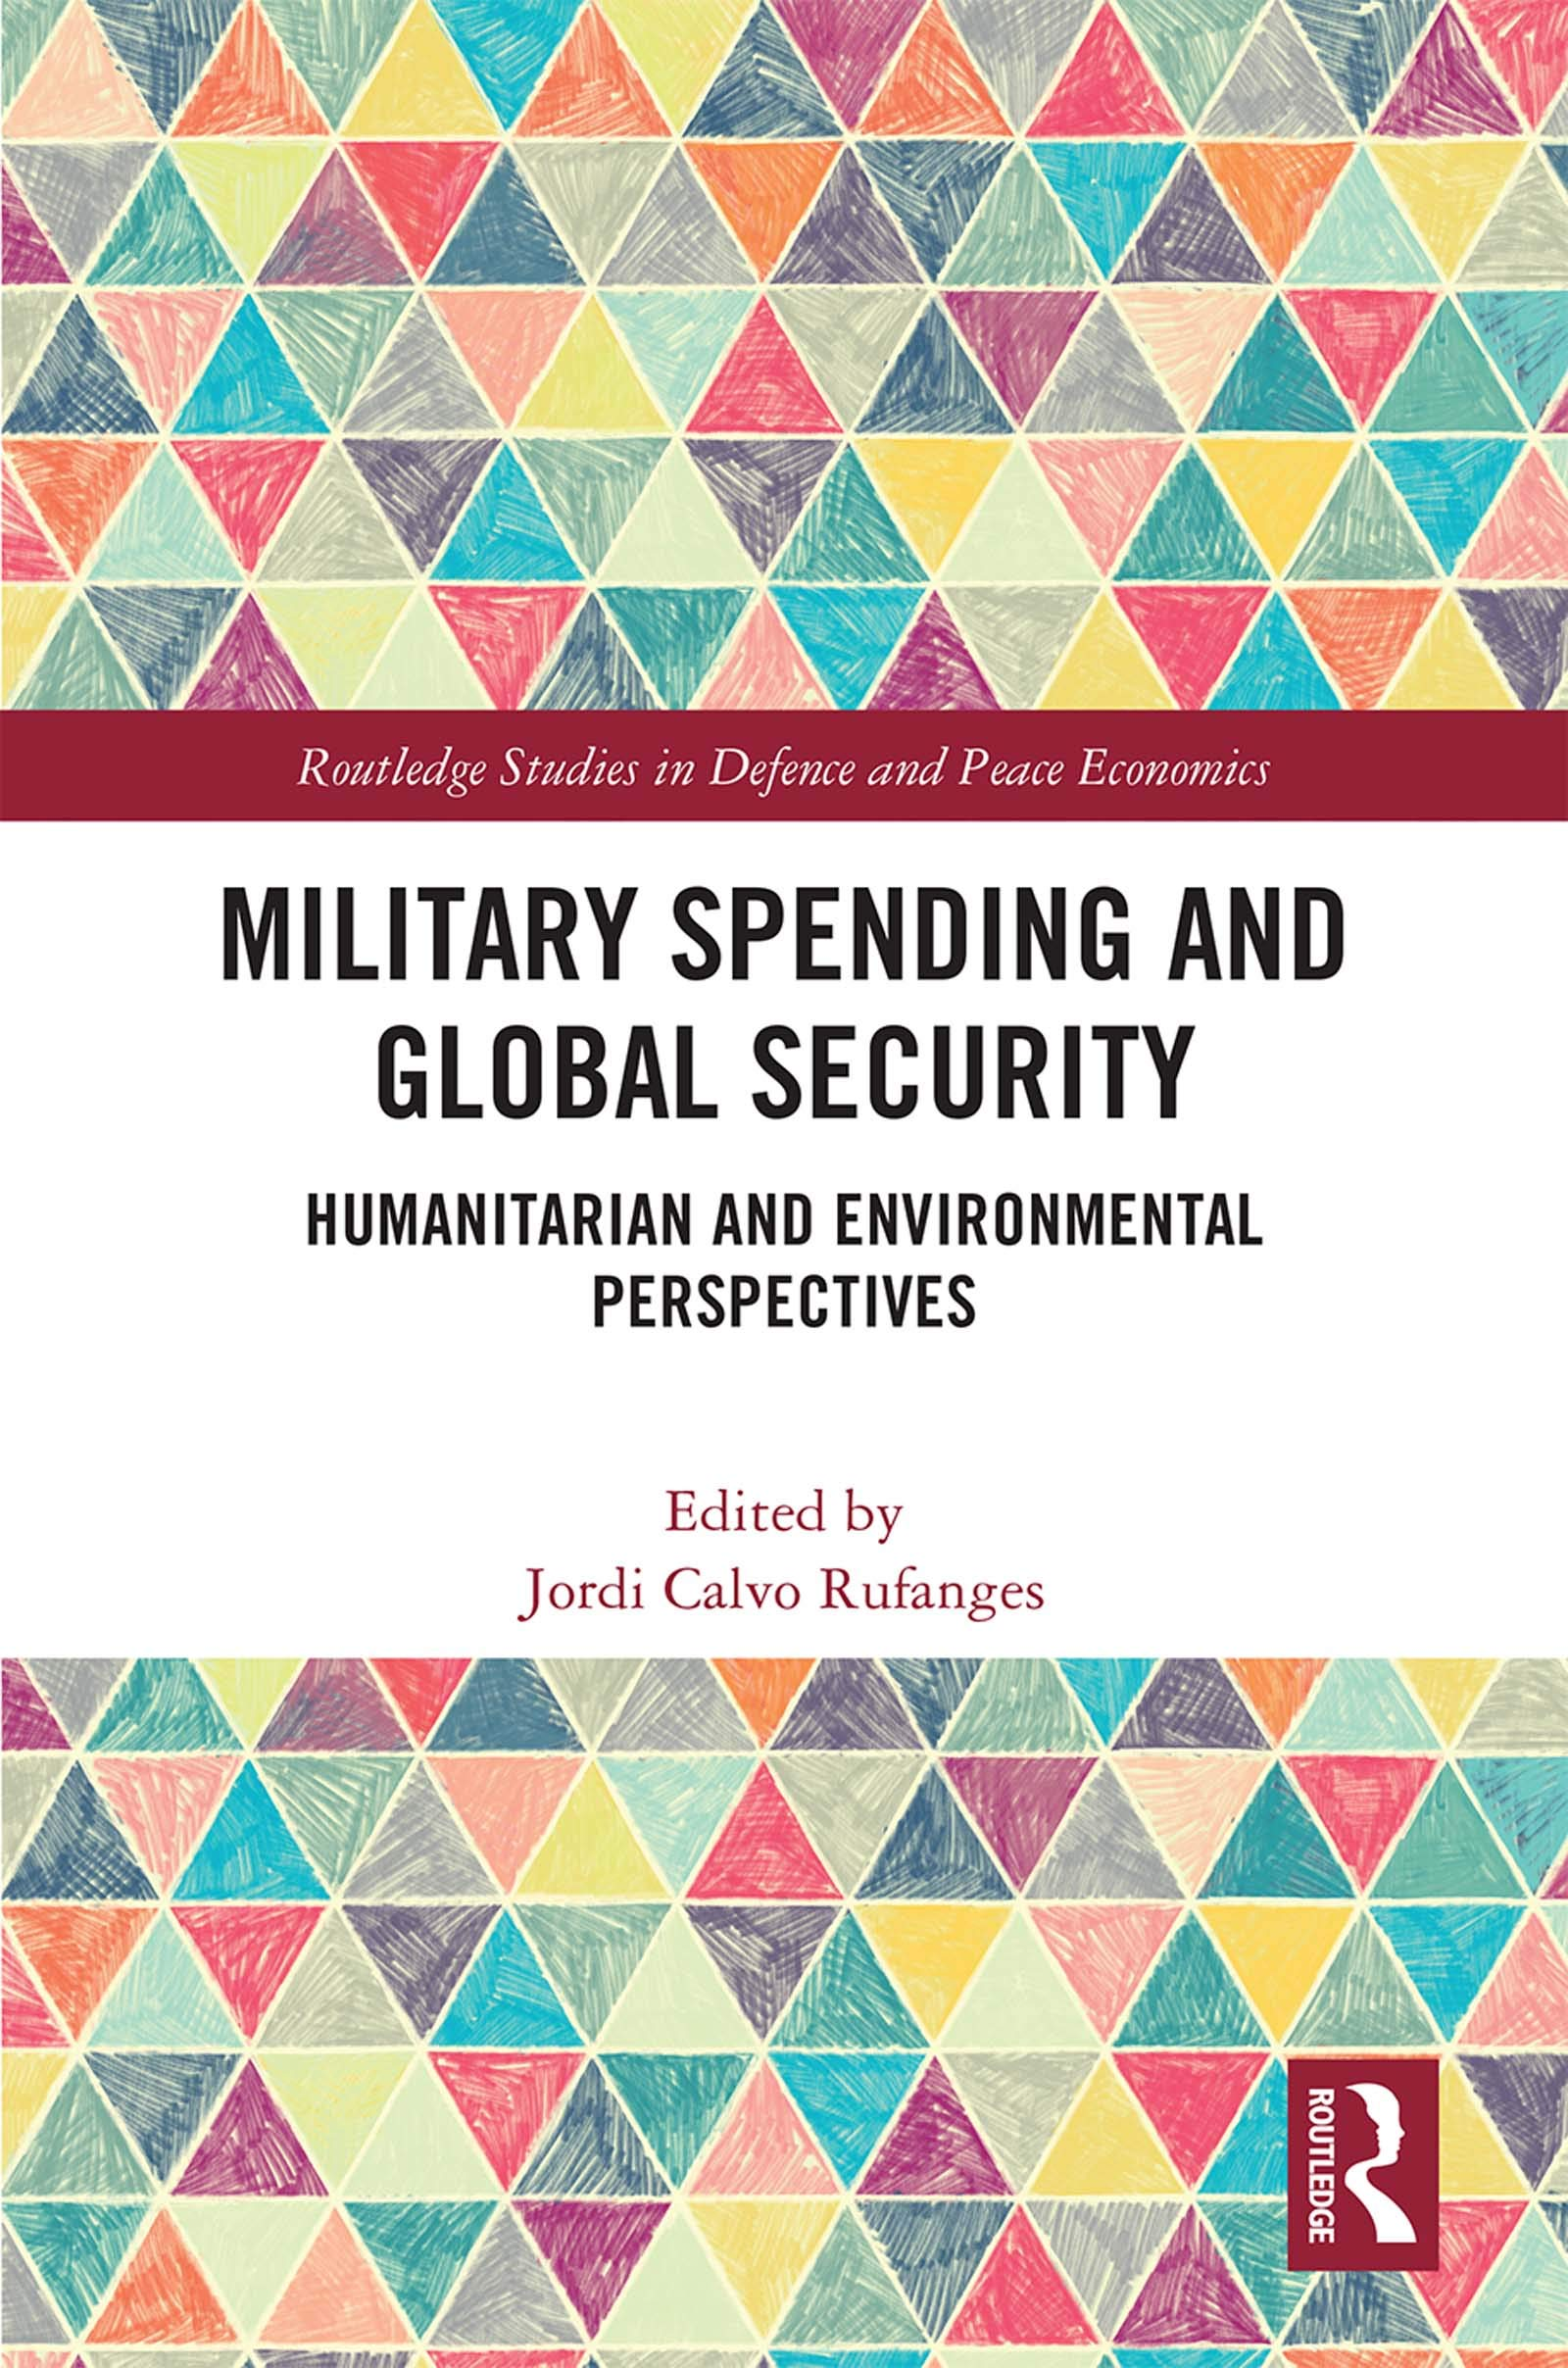 Military Spending and Global Security: Humanitarian and Environmental Perspectives (Routledge Studies in Defence and Peace Economics)